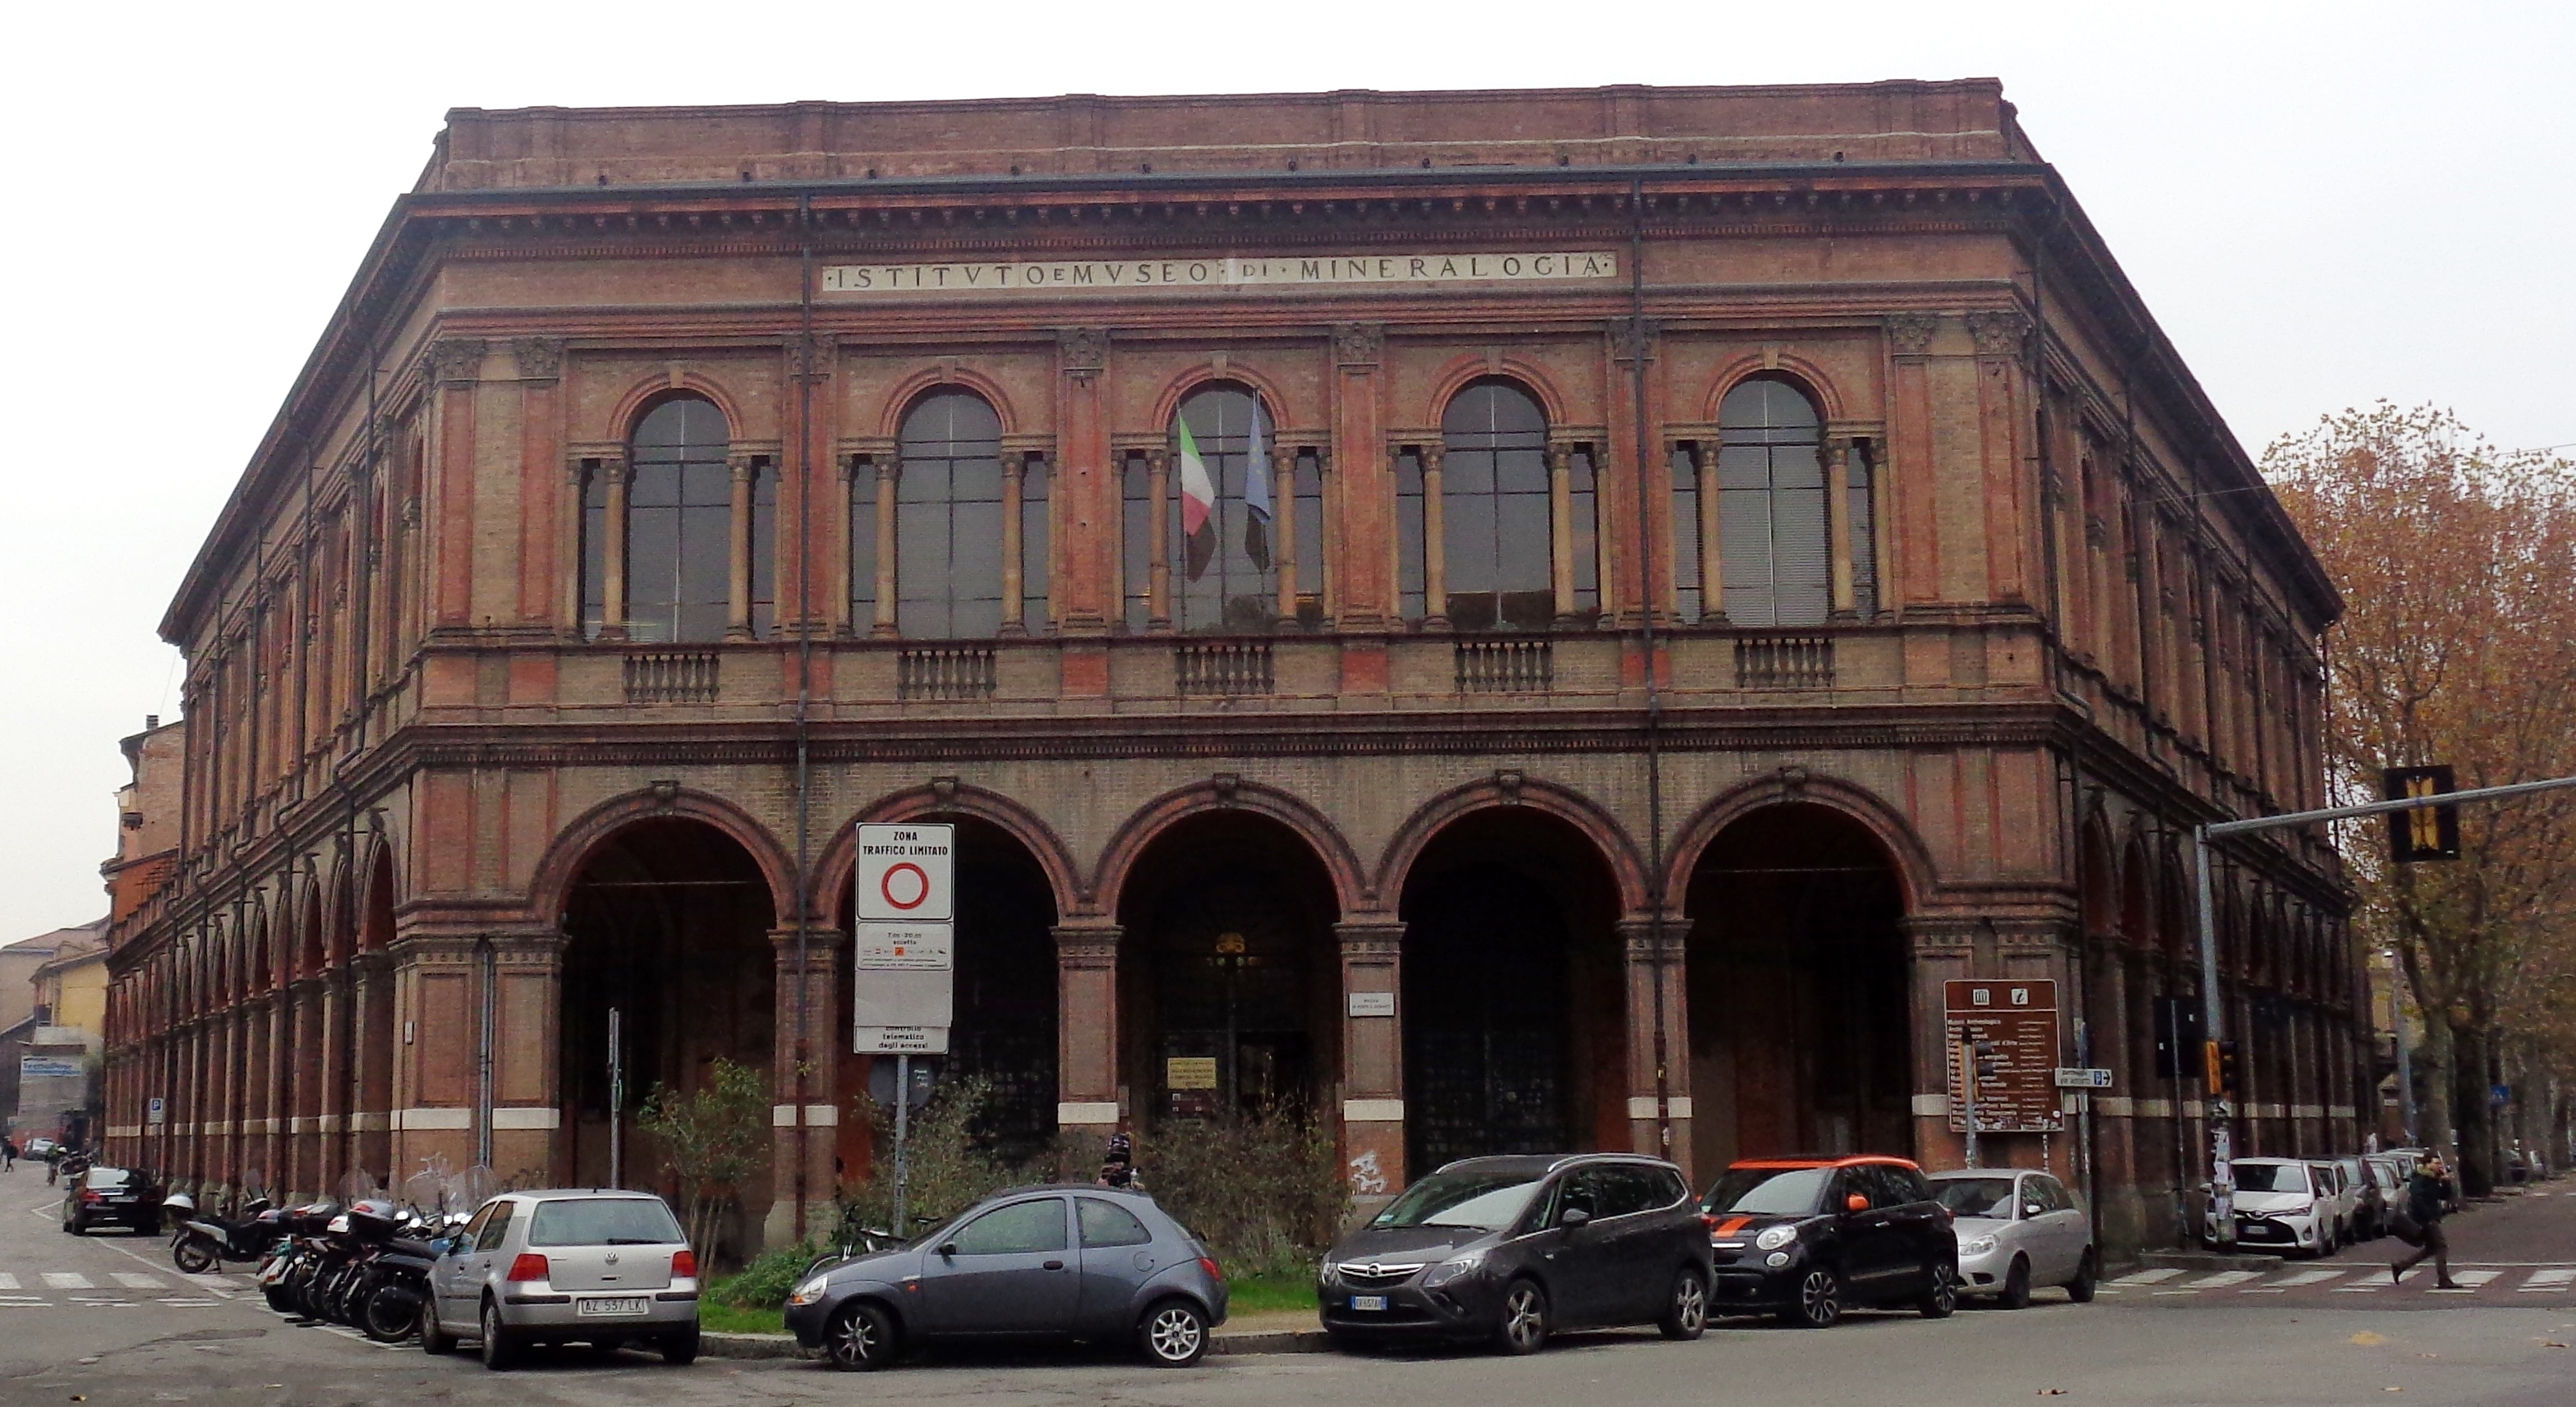 Università Di Bologna Wikipedia